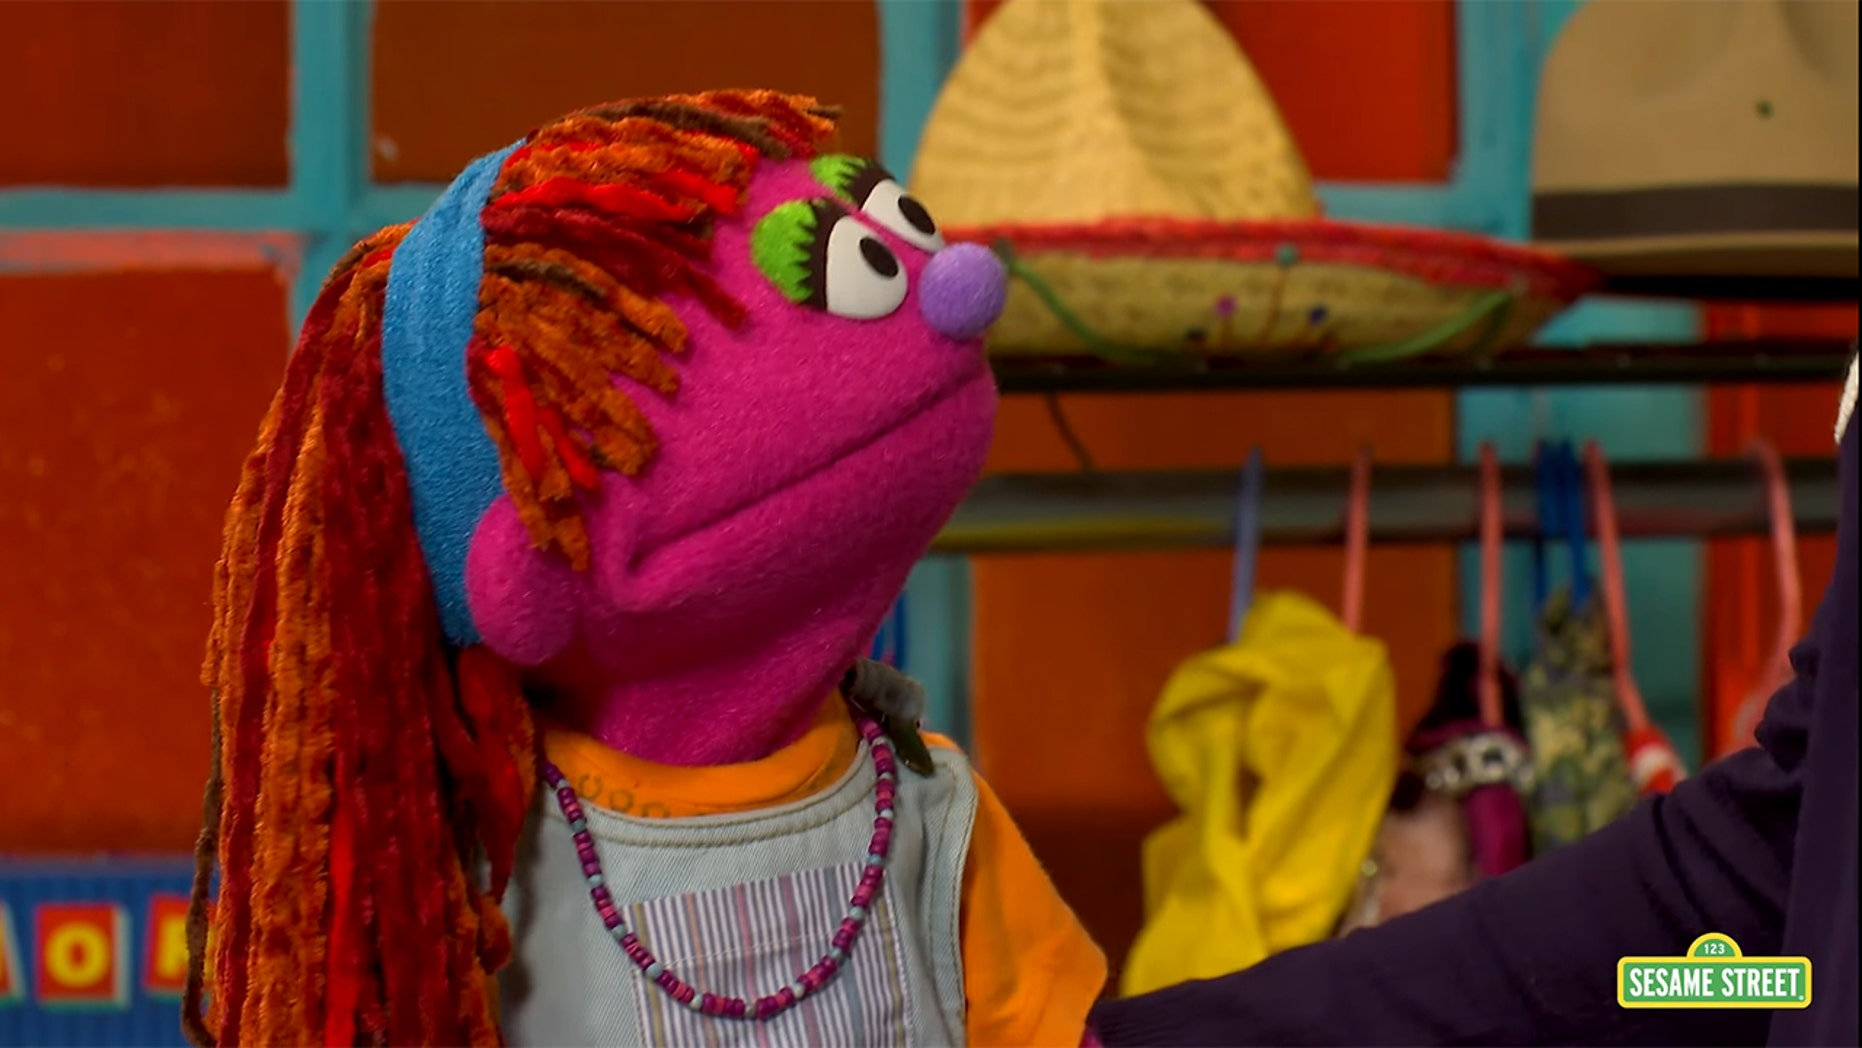 Lily is the first homeless character to live on Sesame Street